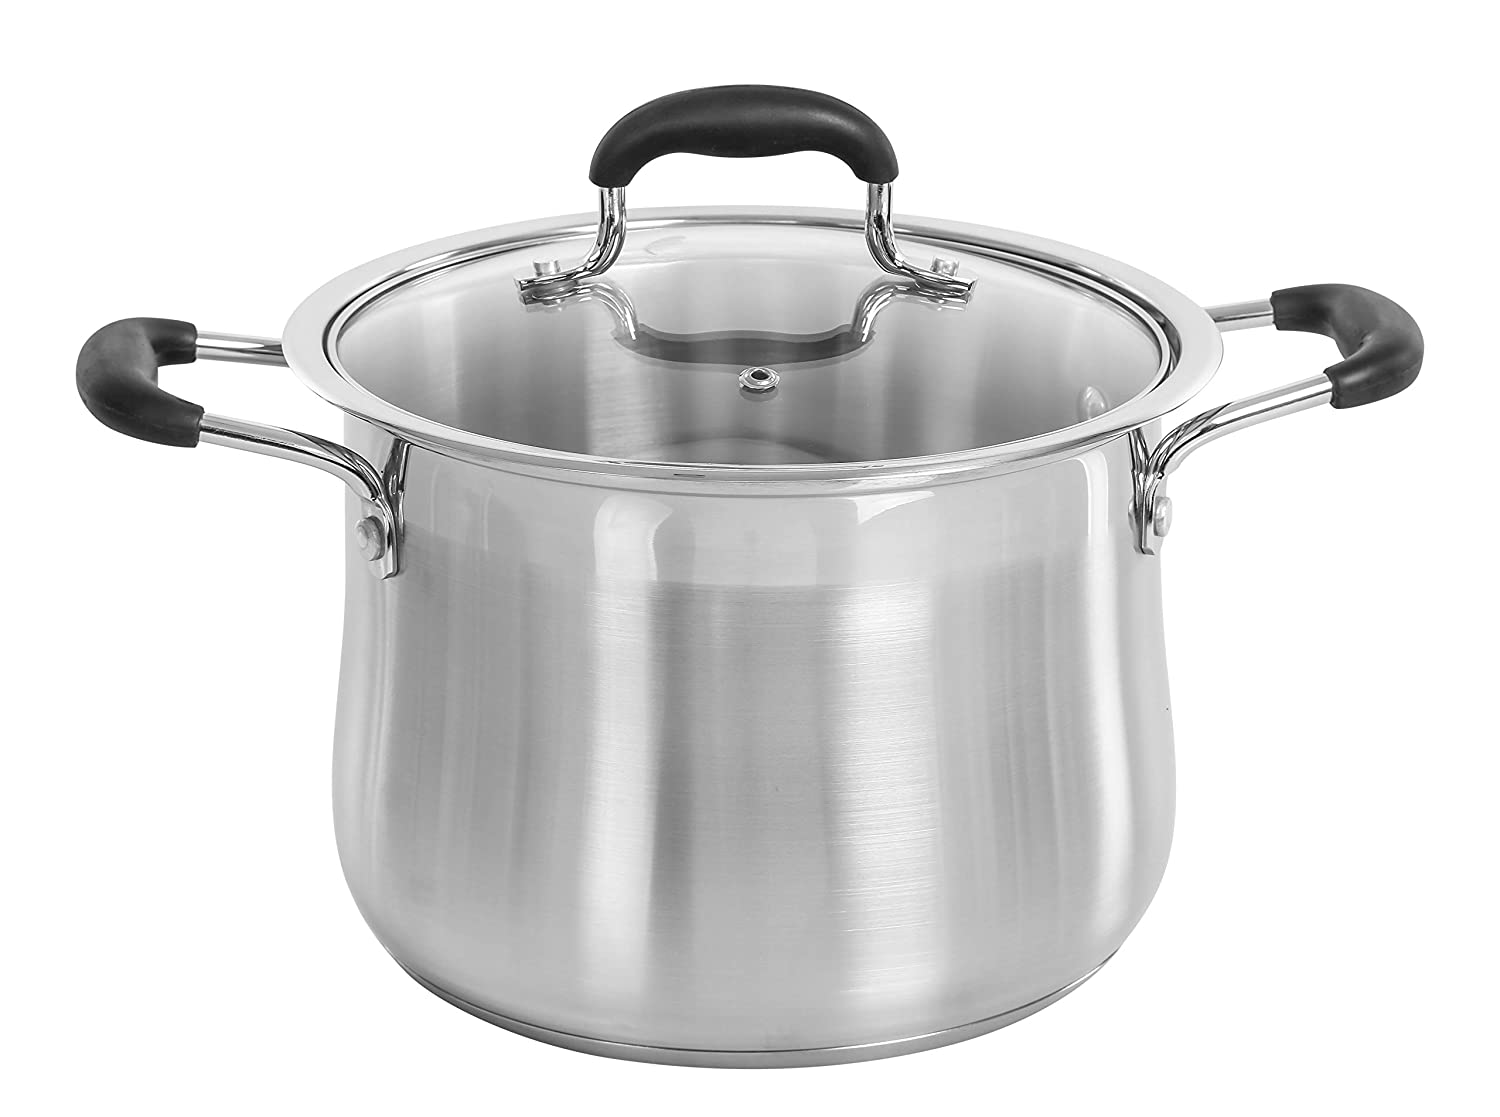 CONCORD Stainless Steel Stock Pot with Glass Lid (Induction Compatible) ((7 QT)